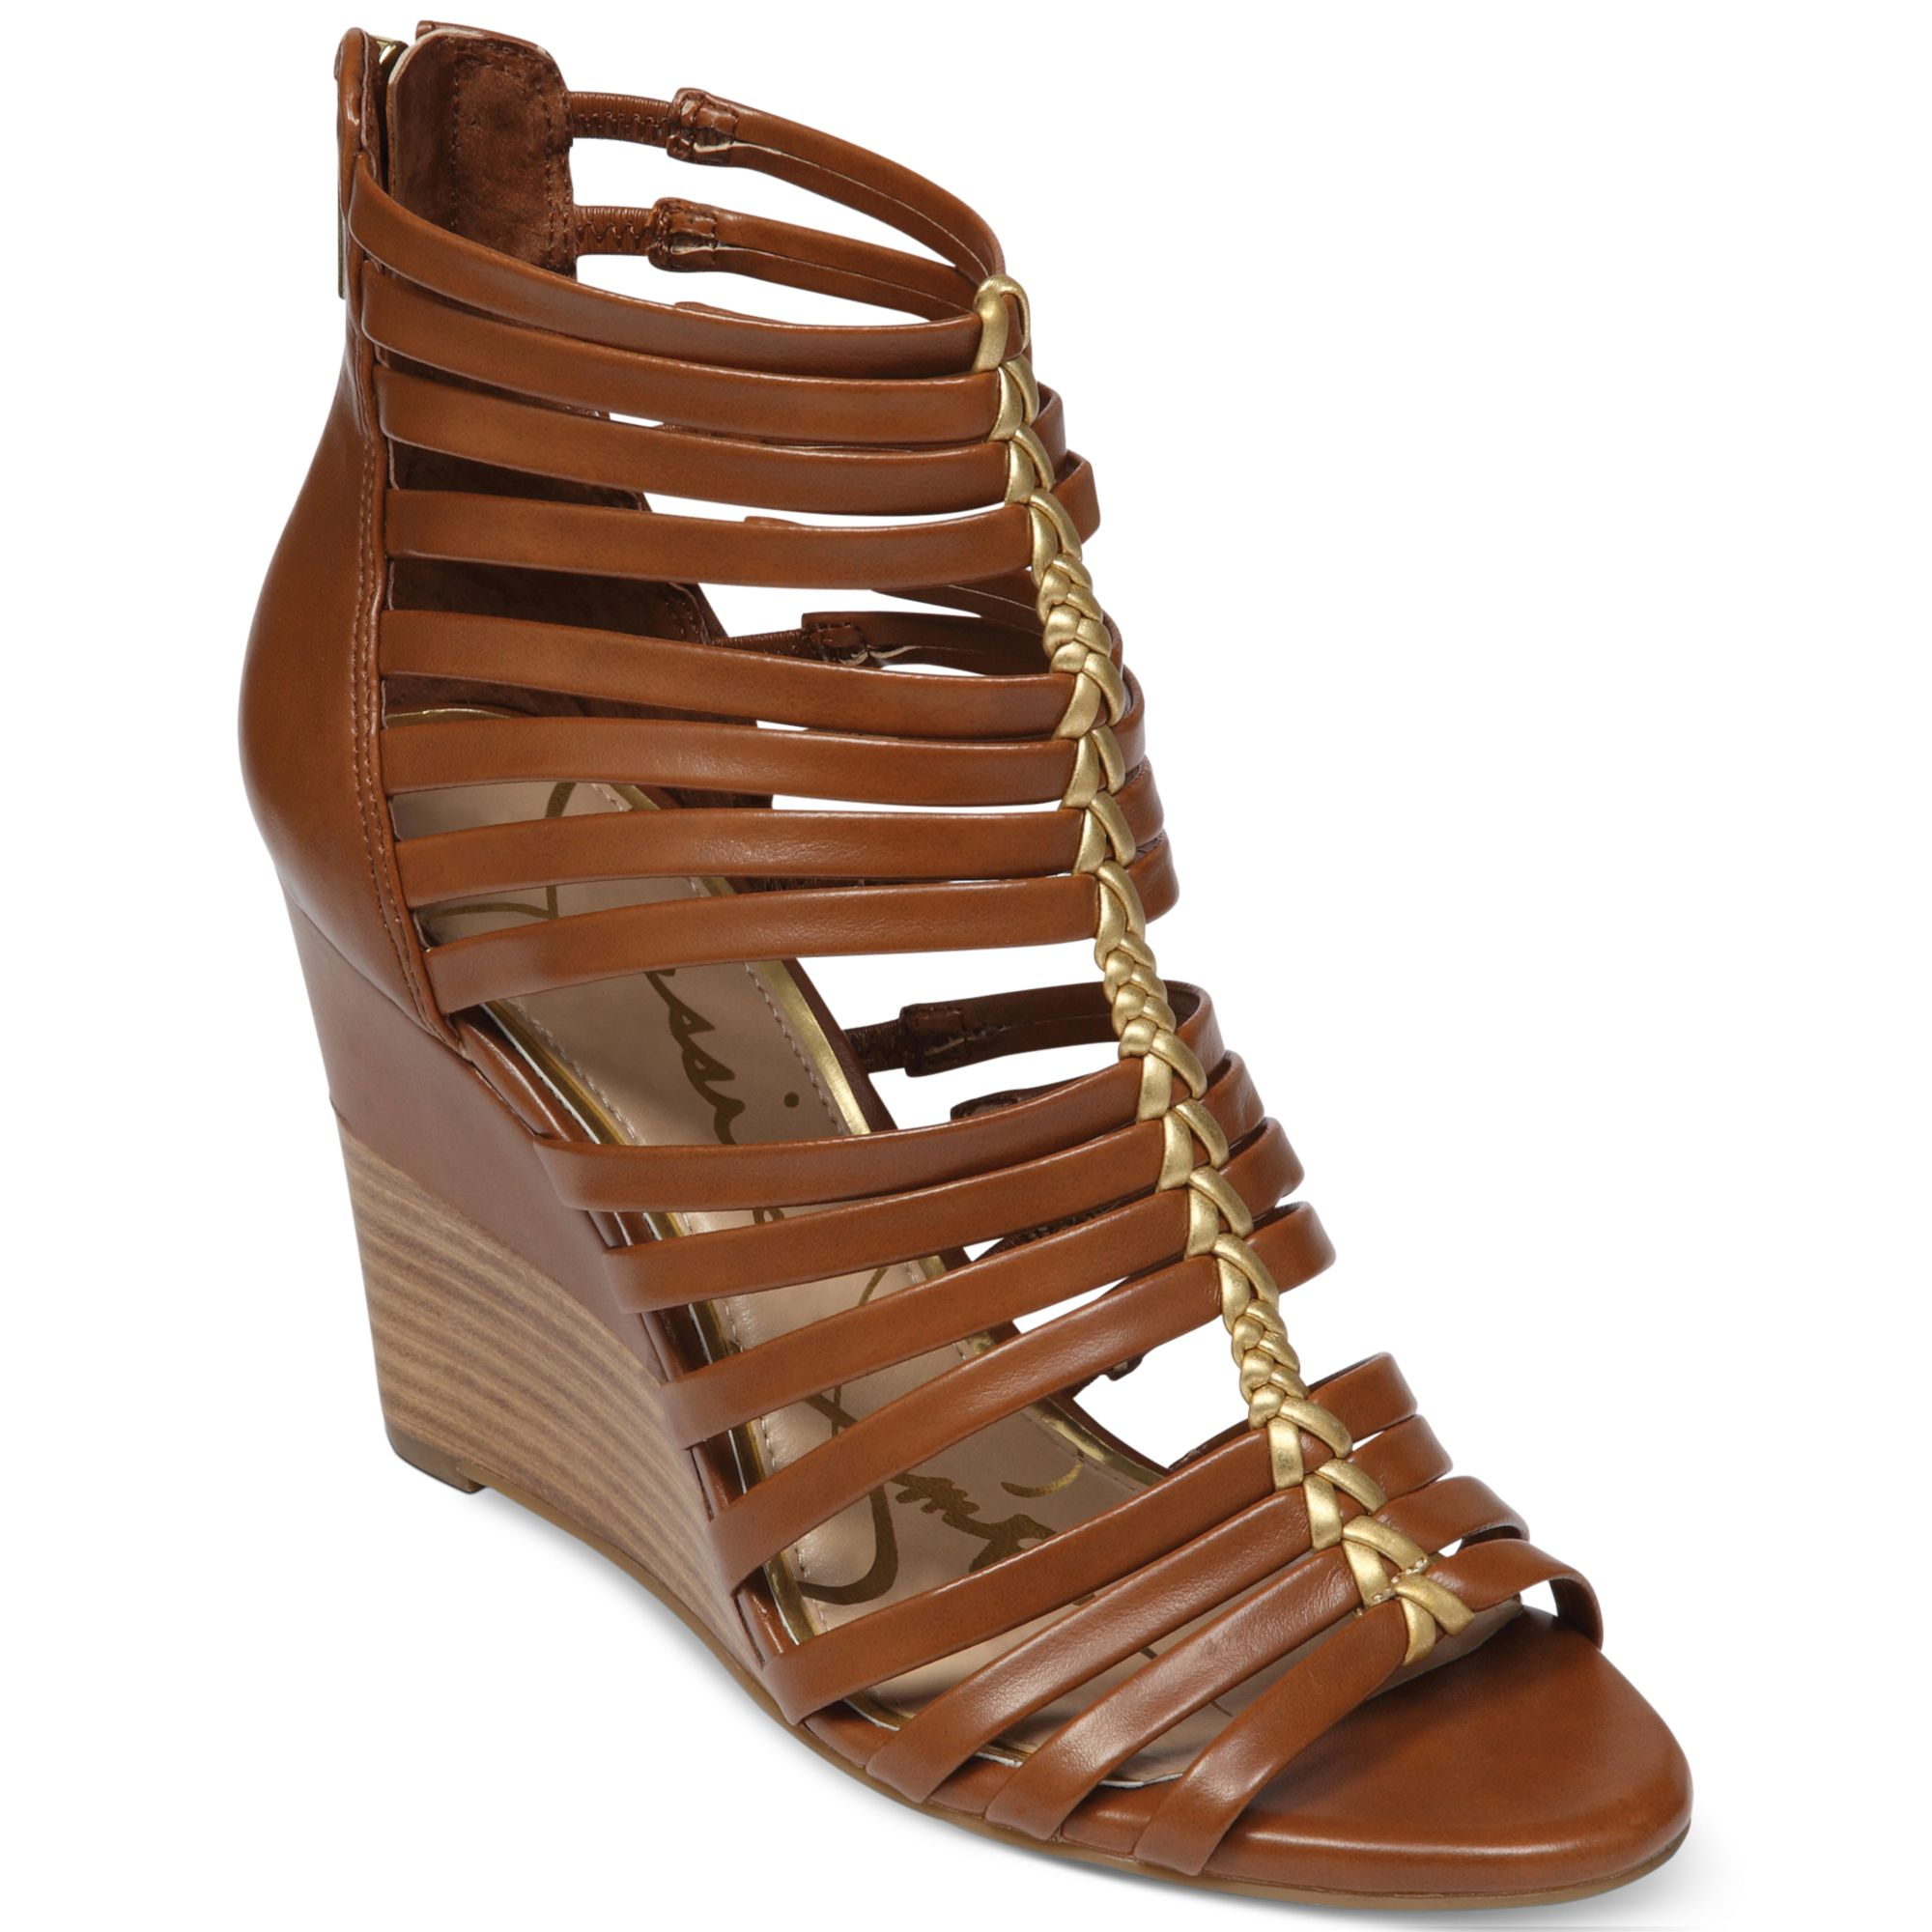 Jessica Simpson Miccy Wedge Gladiator Sandals In Brown